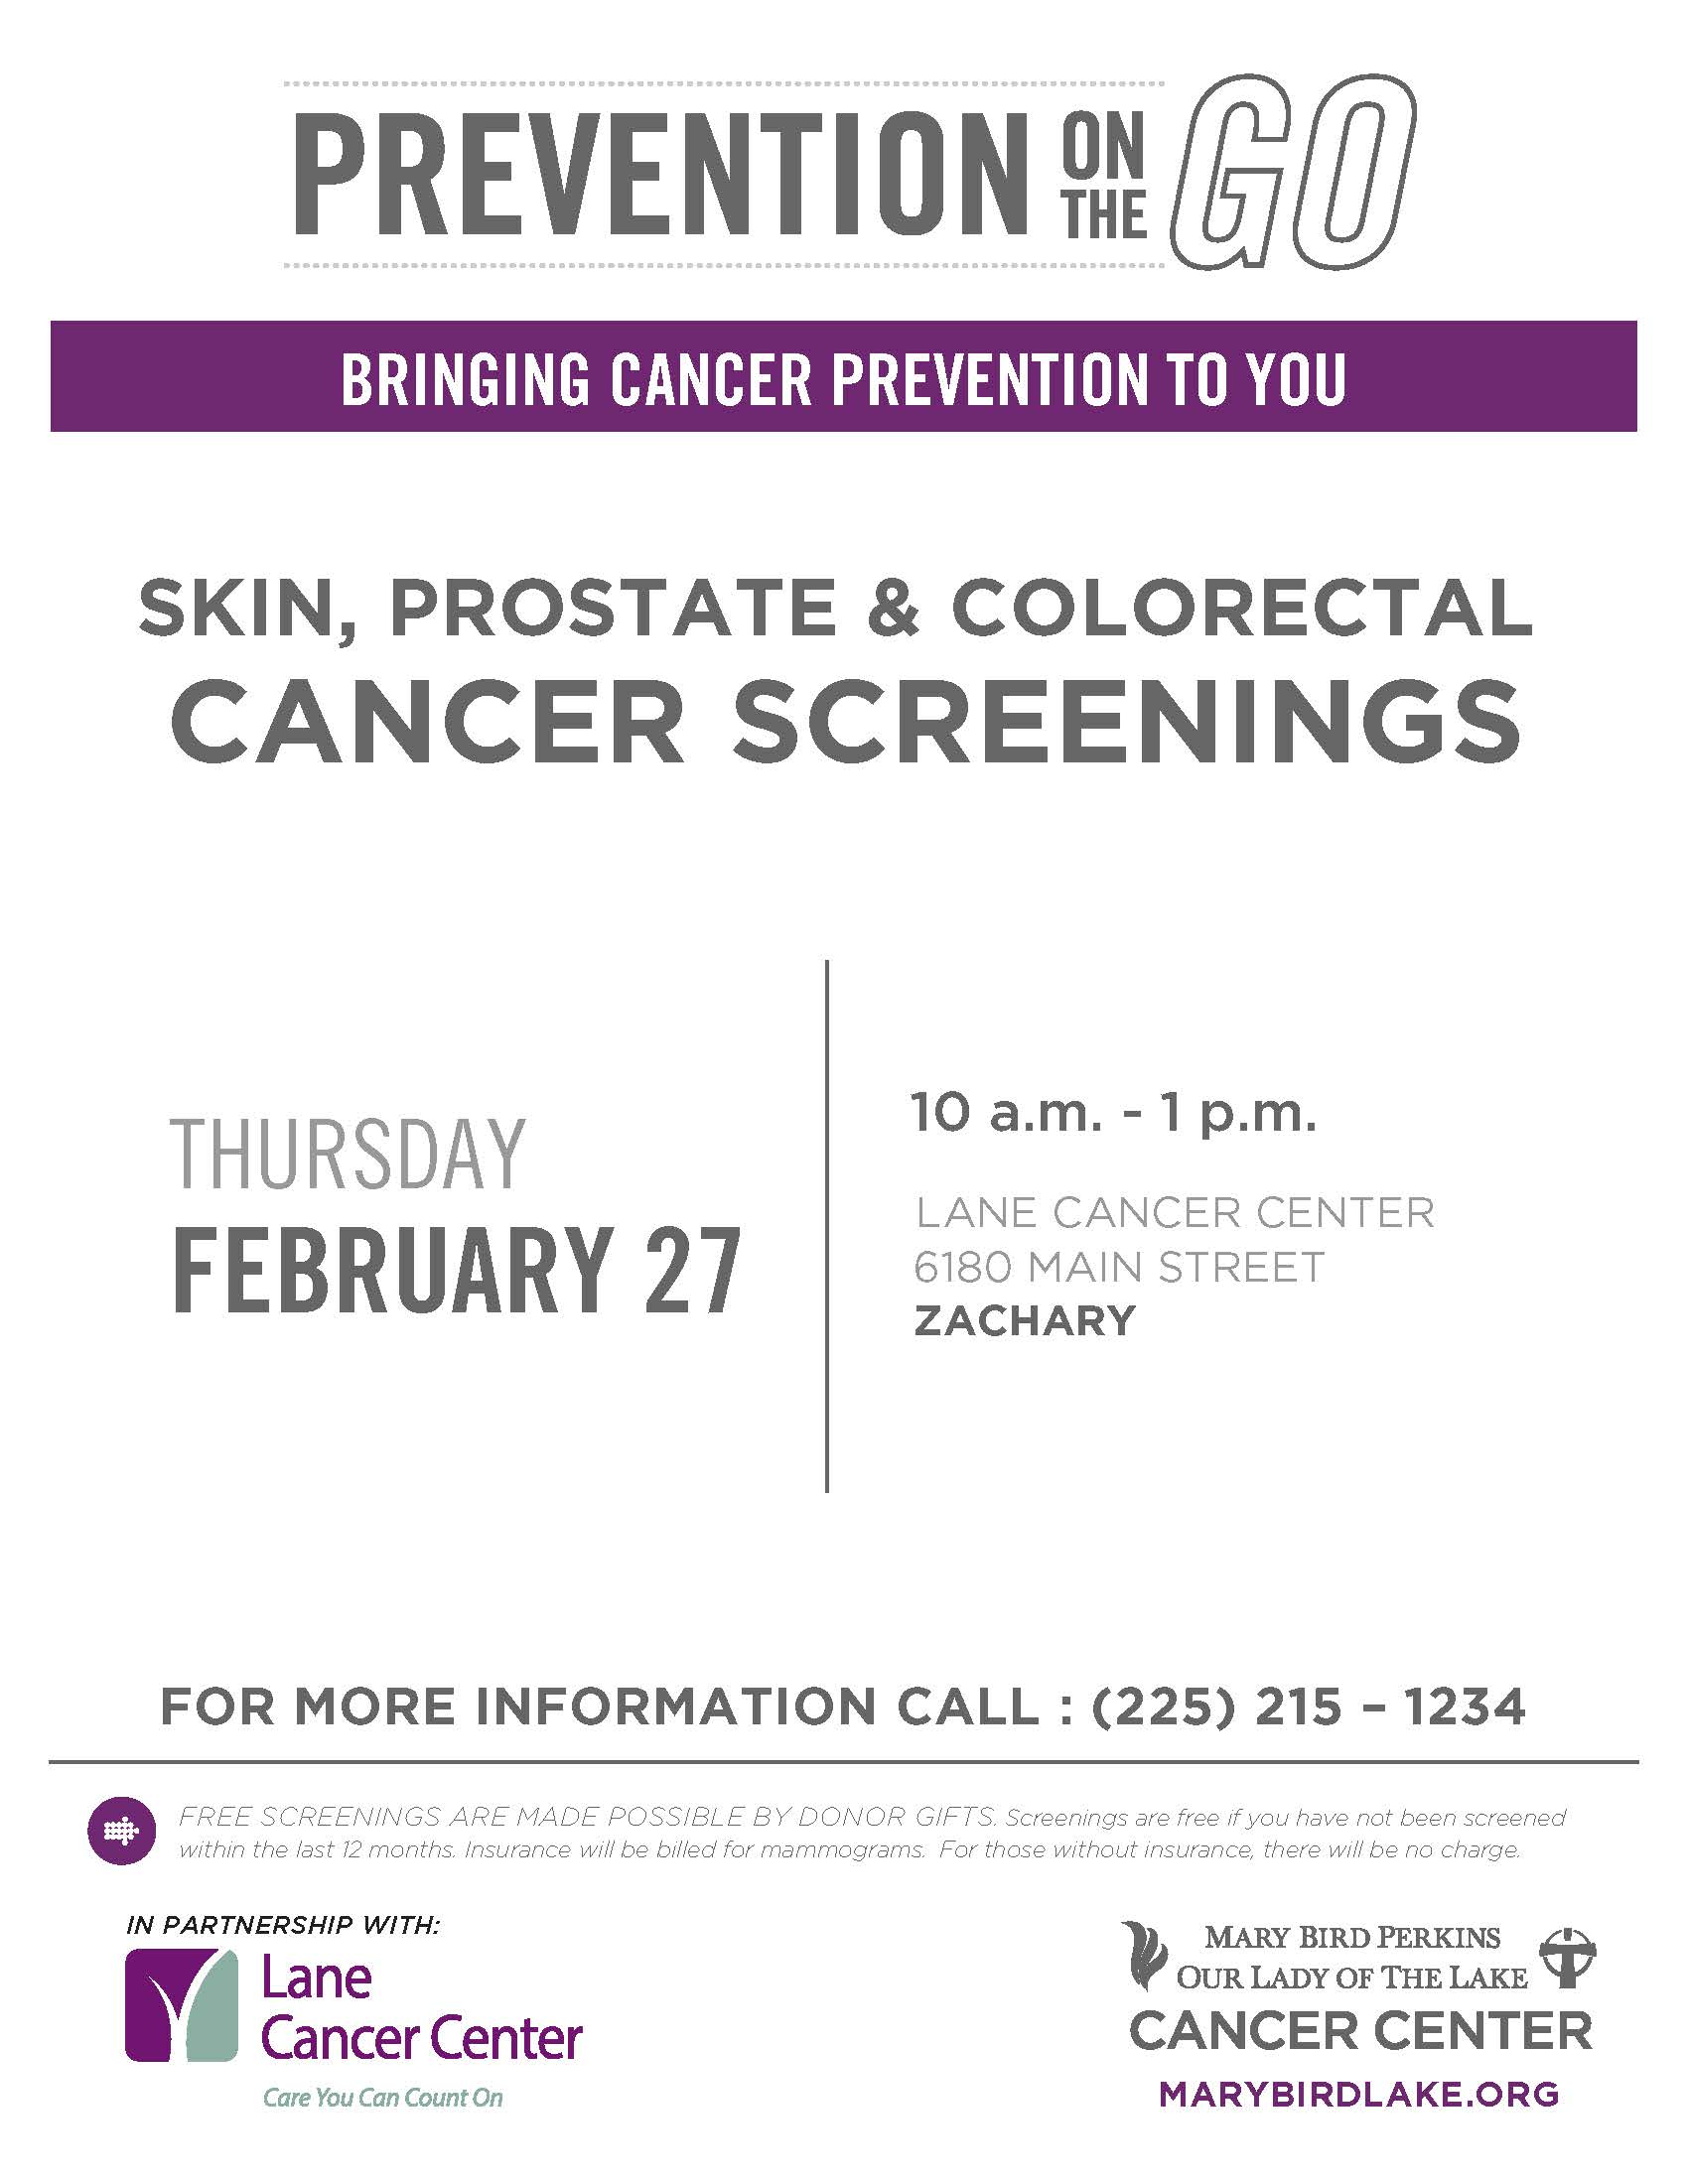 Free Cancer Screenings in Zachary